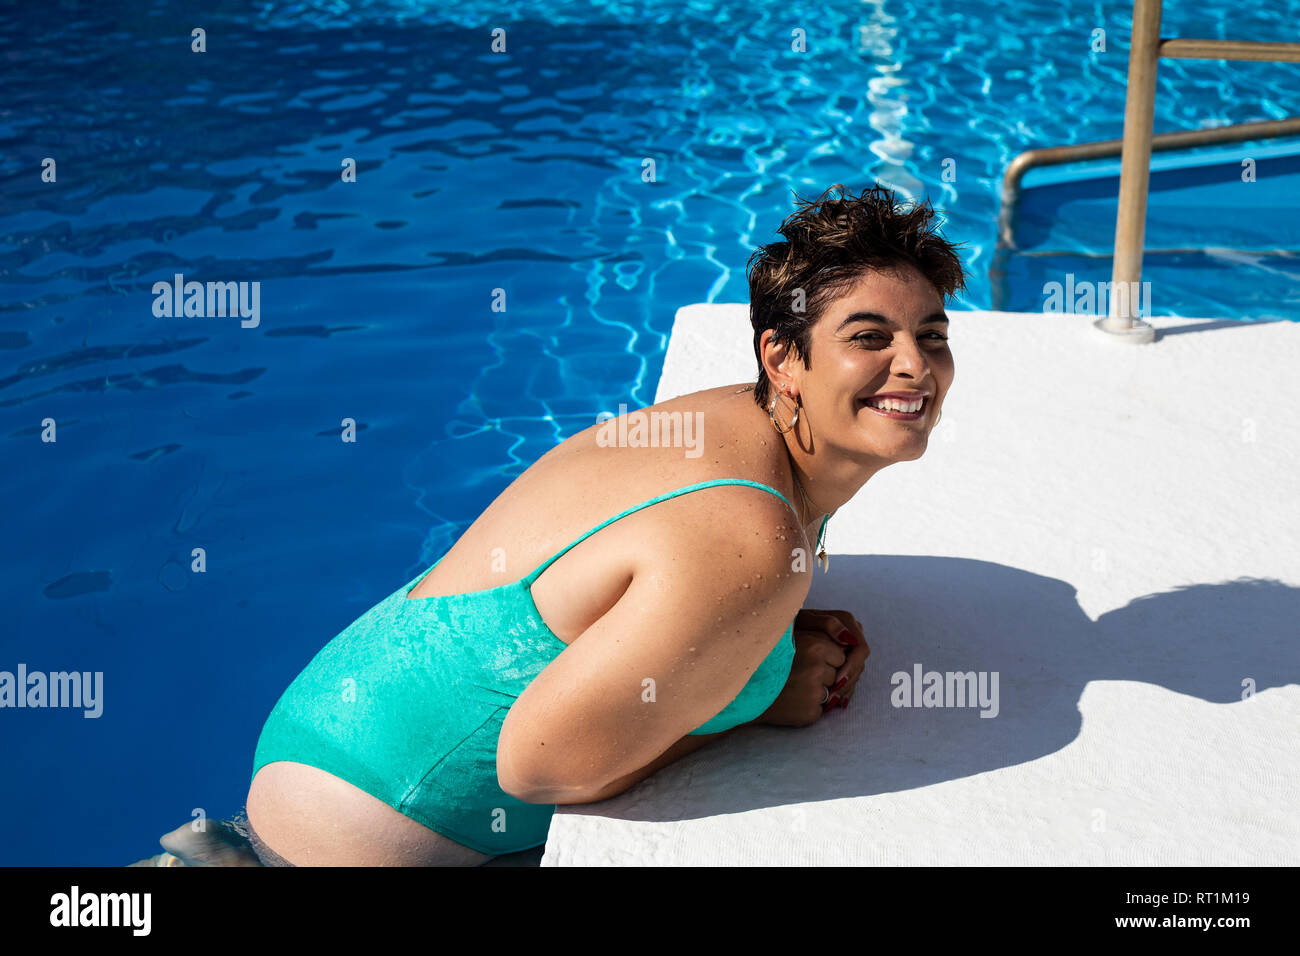 Portrait of plump young woman leaning at poolside - Stock Image